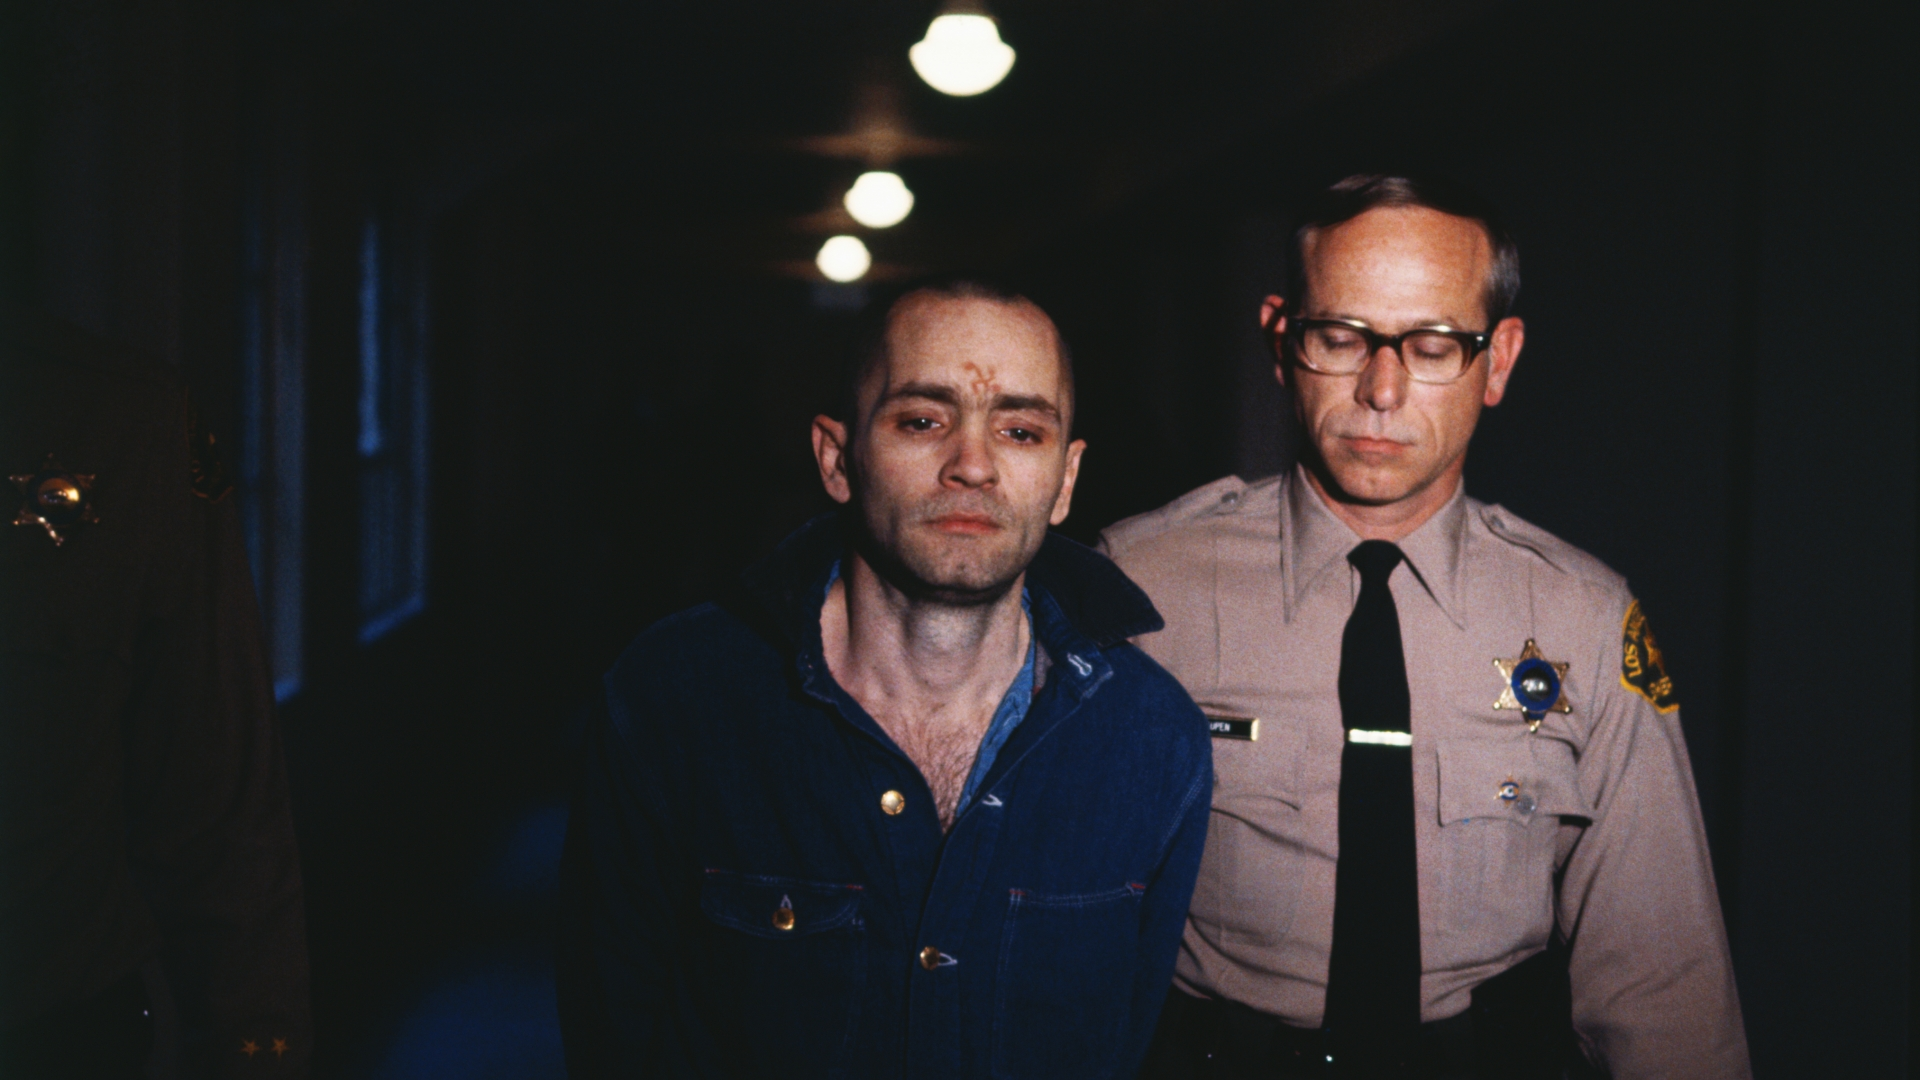 Charles Manson being led back into the courtroom to hear the penalty he and this three female followers must pay for the Tate-LaBianca murders of August 1969. (Credit: Bettmann Archive/Getty Images)